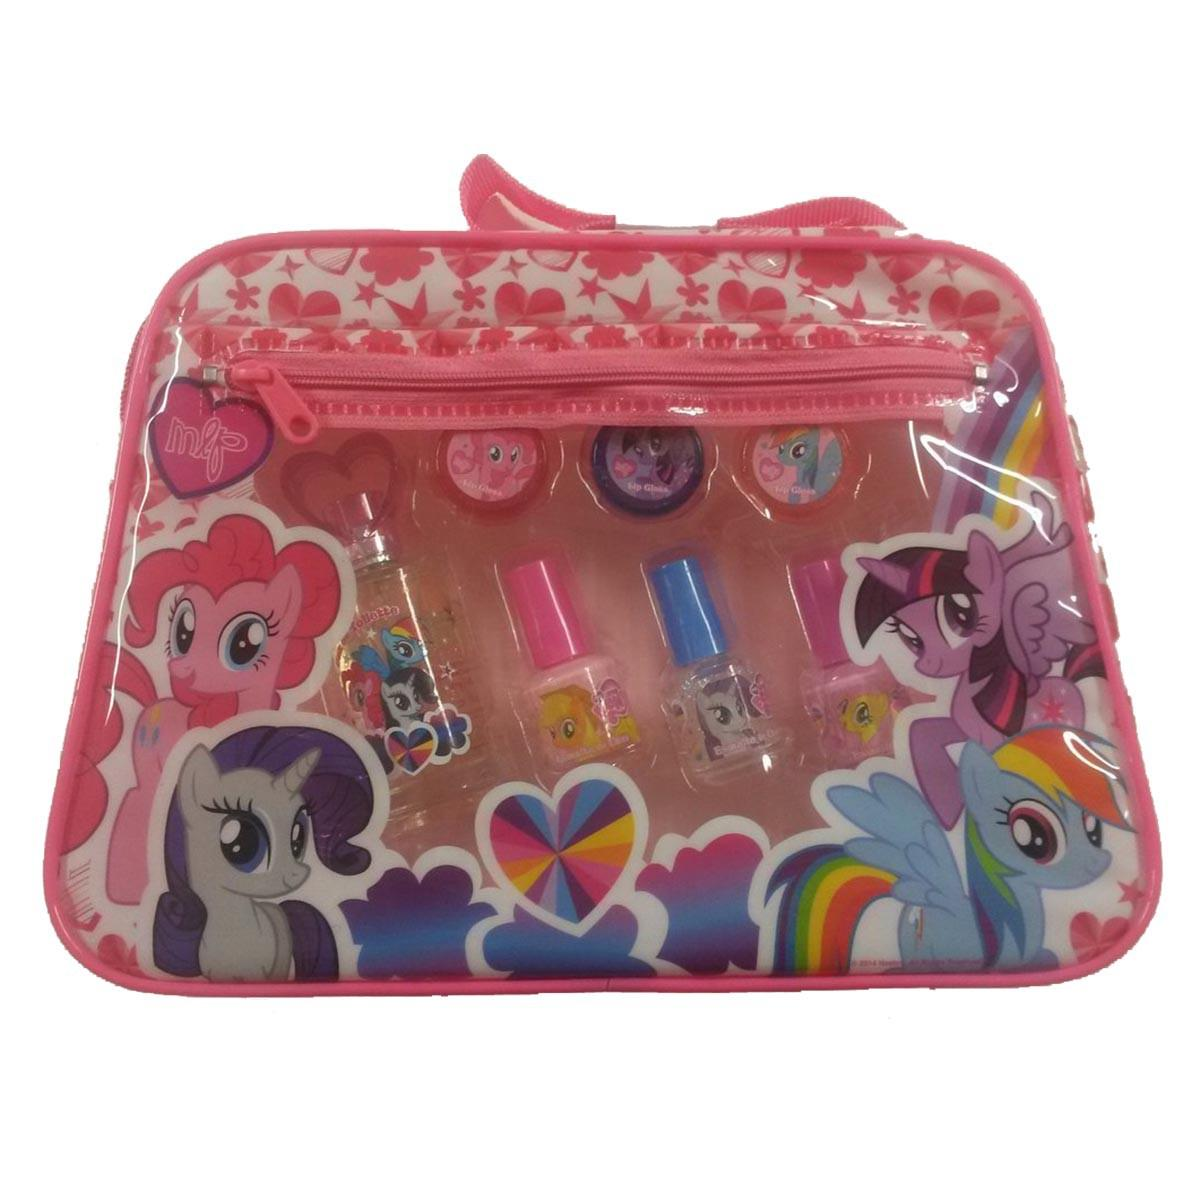 Consumo My Little Pony Eau De Toilette 25 ml Vapo 3 Nail Lacquer 3 Lip Gloss